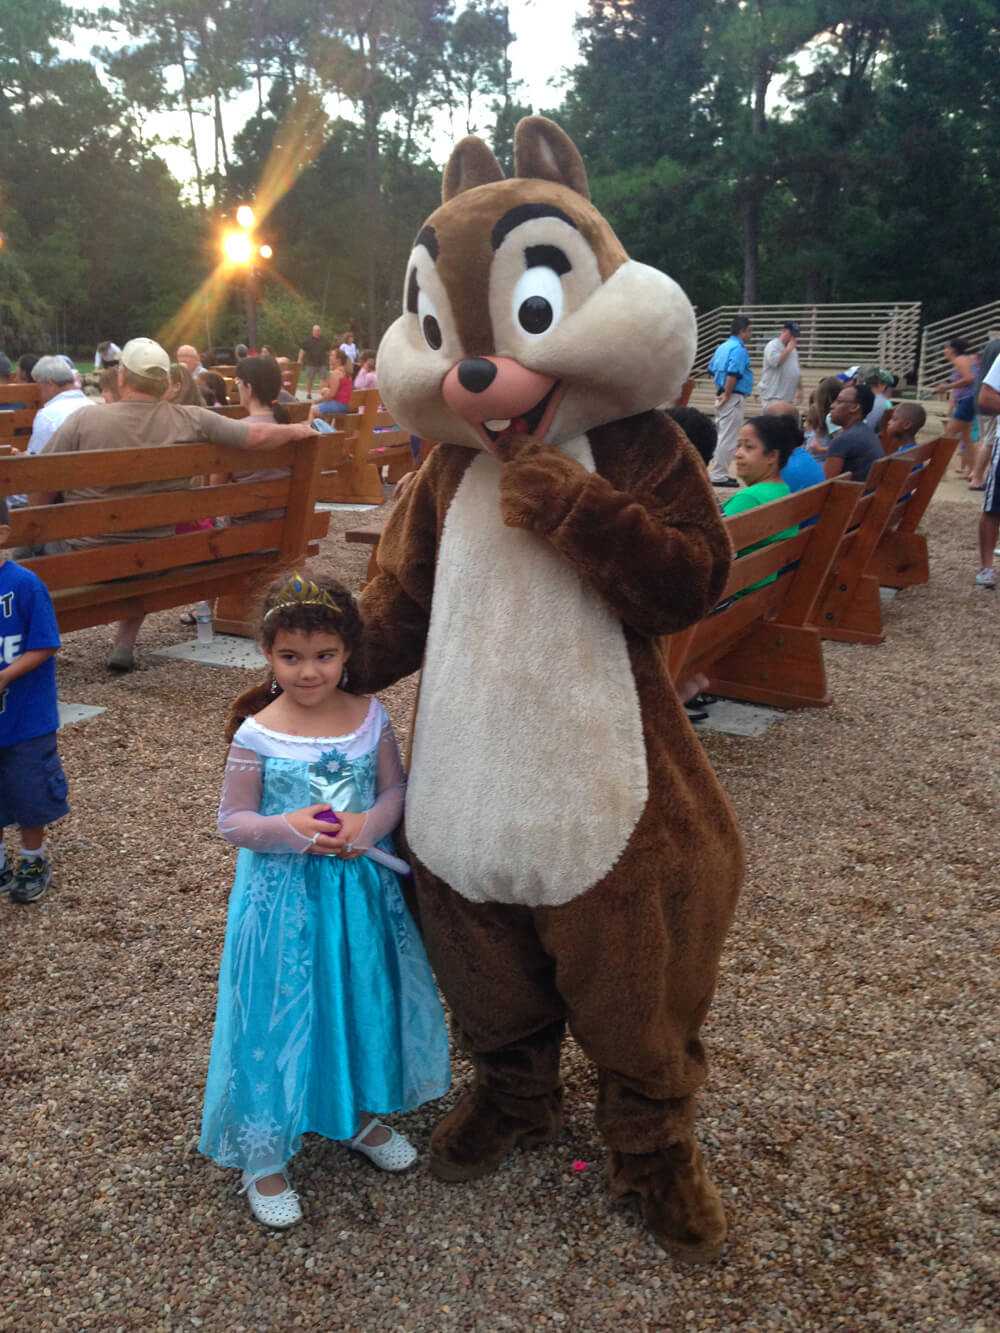 Smores at Disney World  - Chip and Dale's Campfire Sing-A-Long